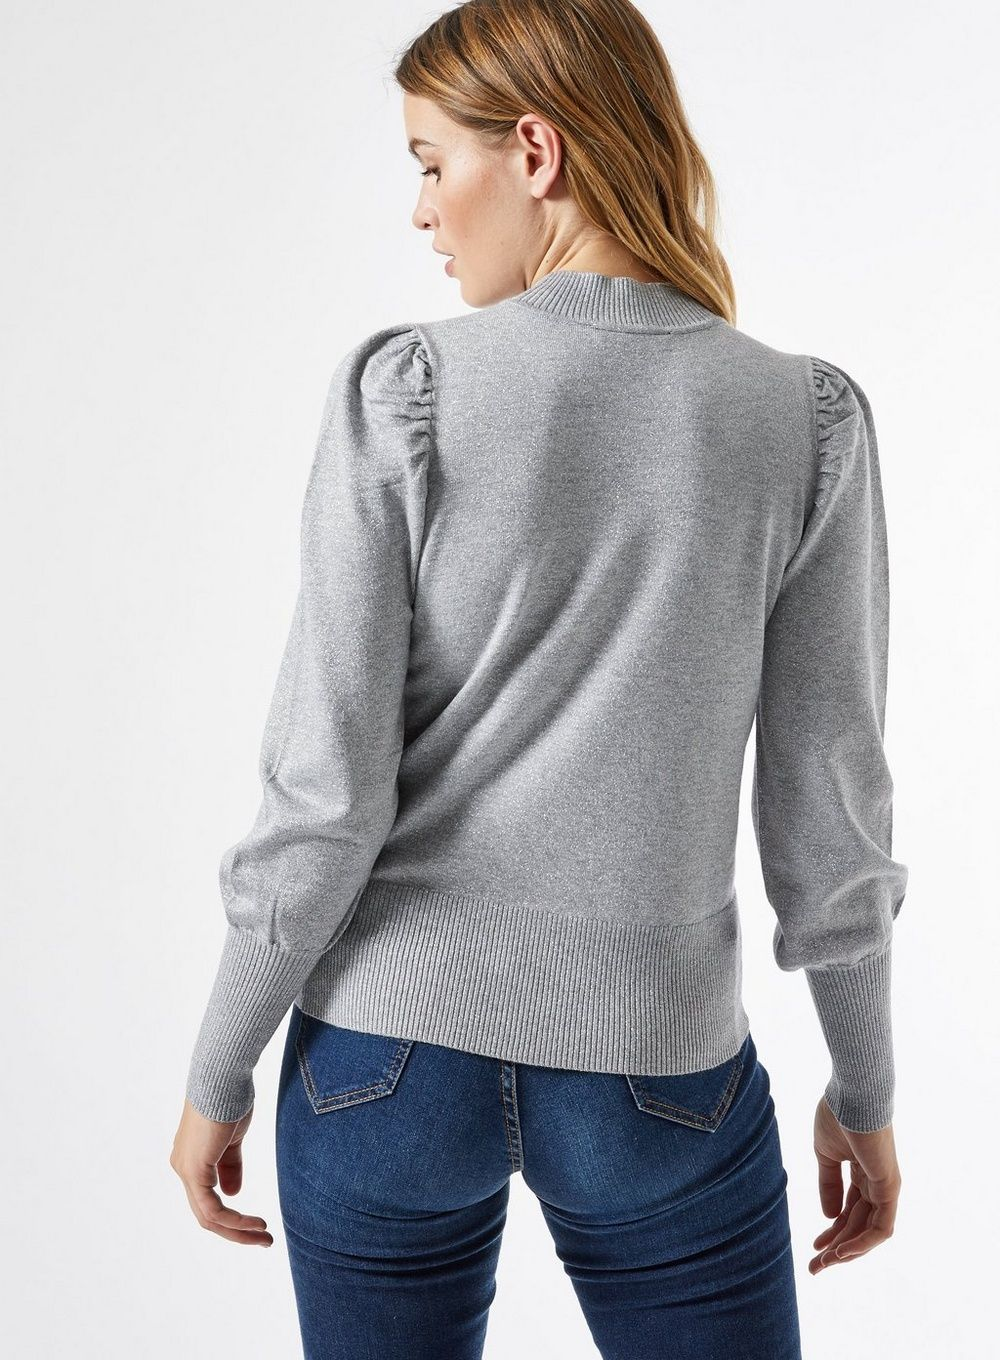 Dorothy Perkins Womens Silver Glitter Puff Sleeve Jumper Sweater Pullover Knit